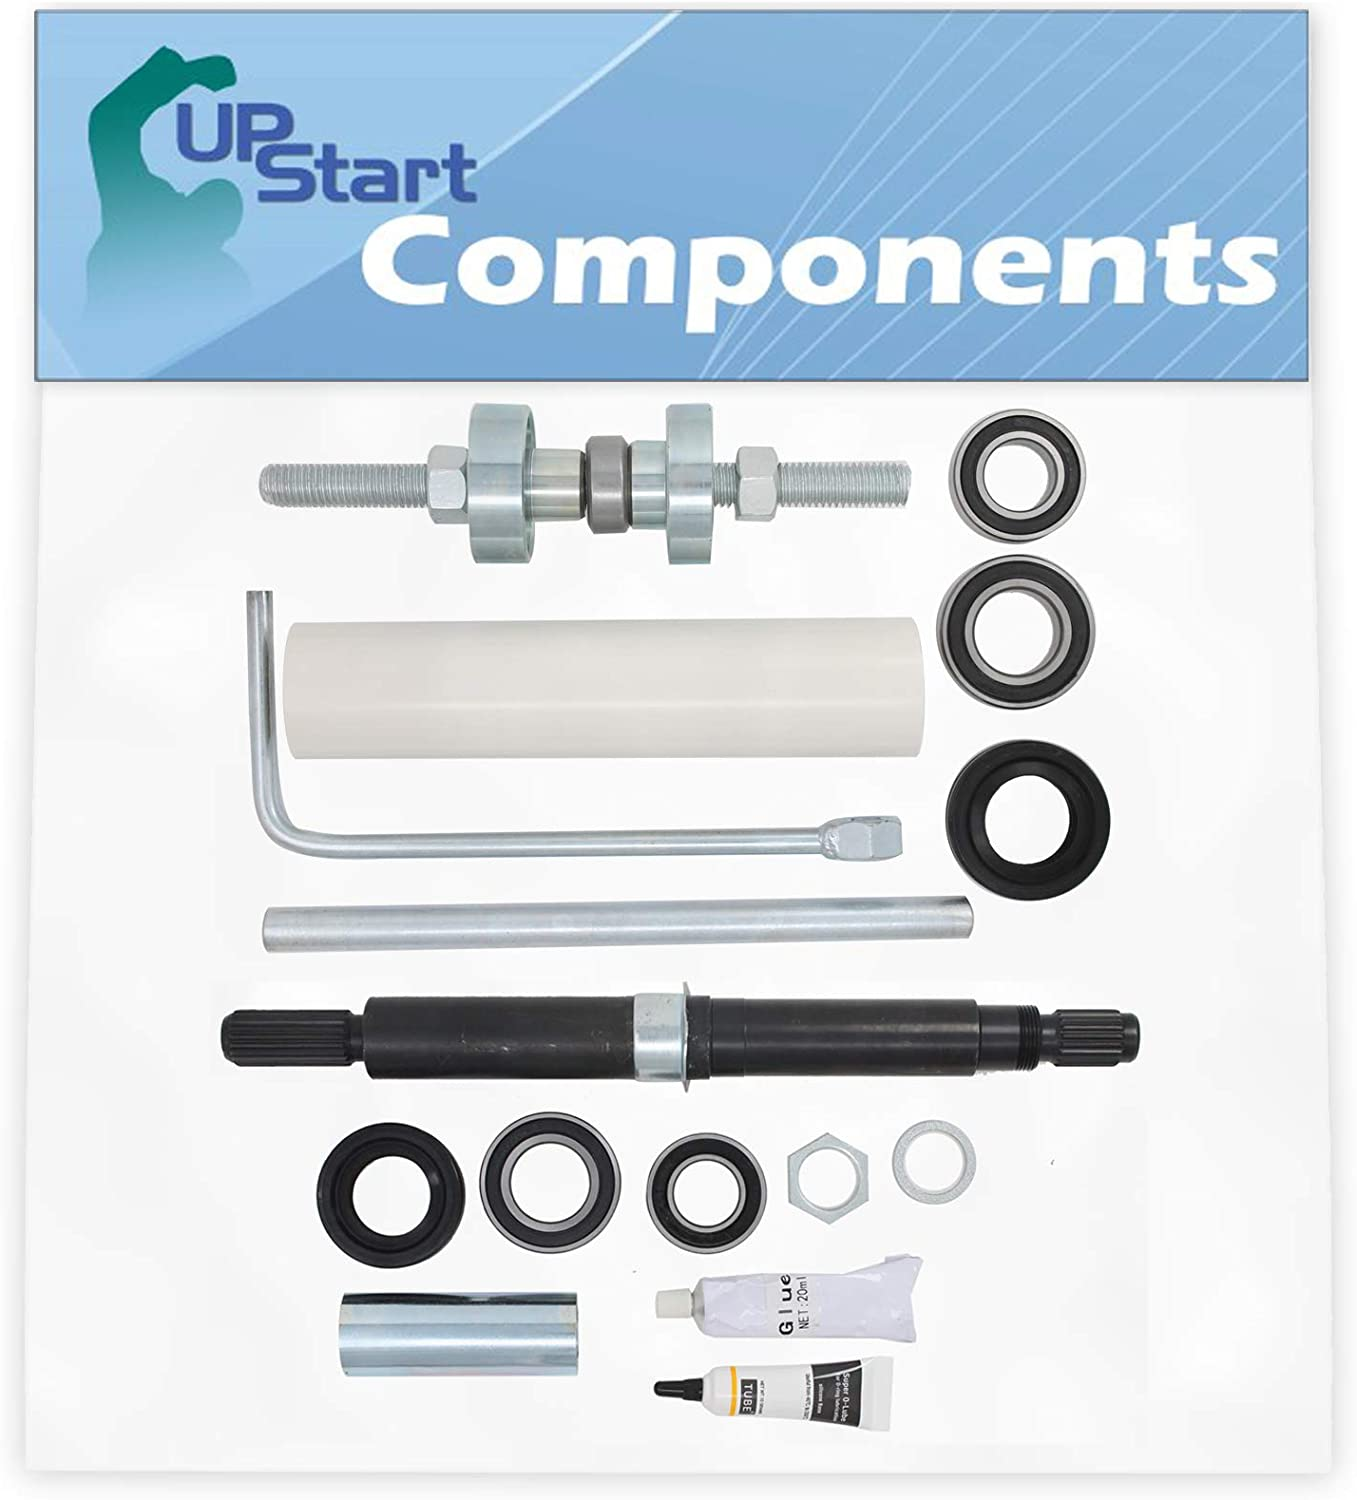 W10447783 Washer Tub Bearing Installation Tool & W10435302 Tub Seal and Bearing Kit Replacement for Maytag MTW6700TQ1 Washing Machine - Compatible with W10447783 Tool Kit & W10435302 Bearing Kit